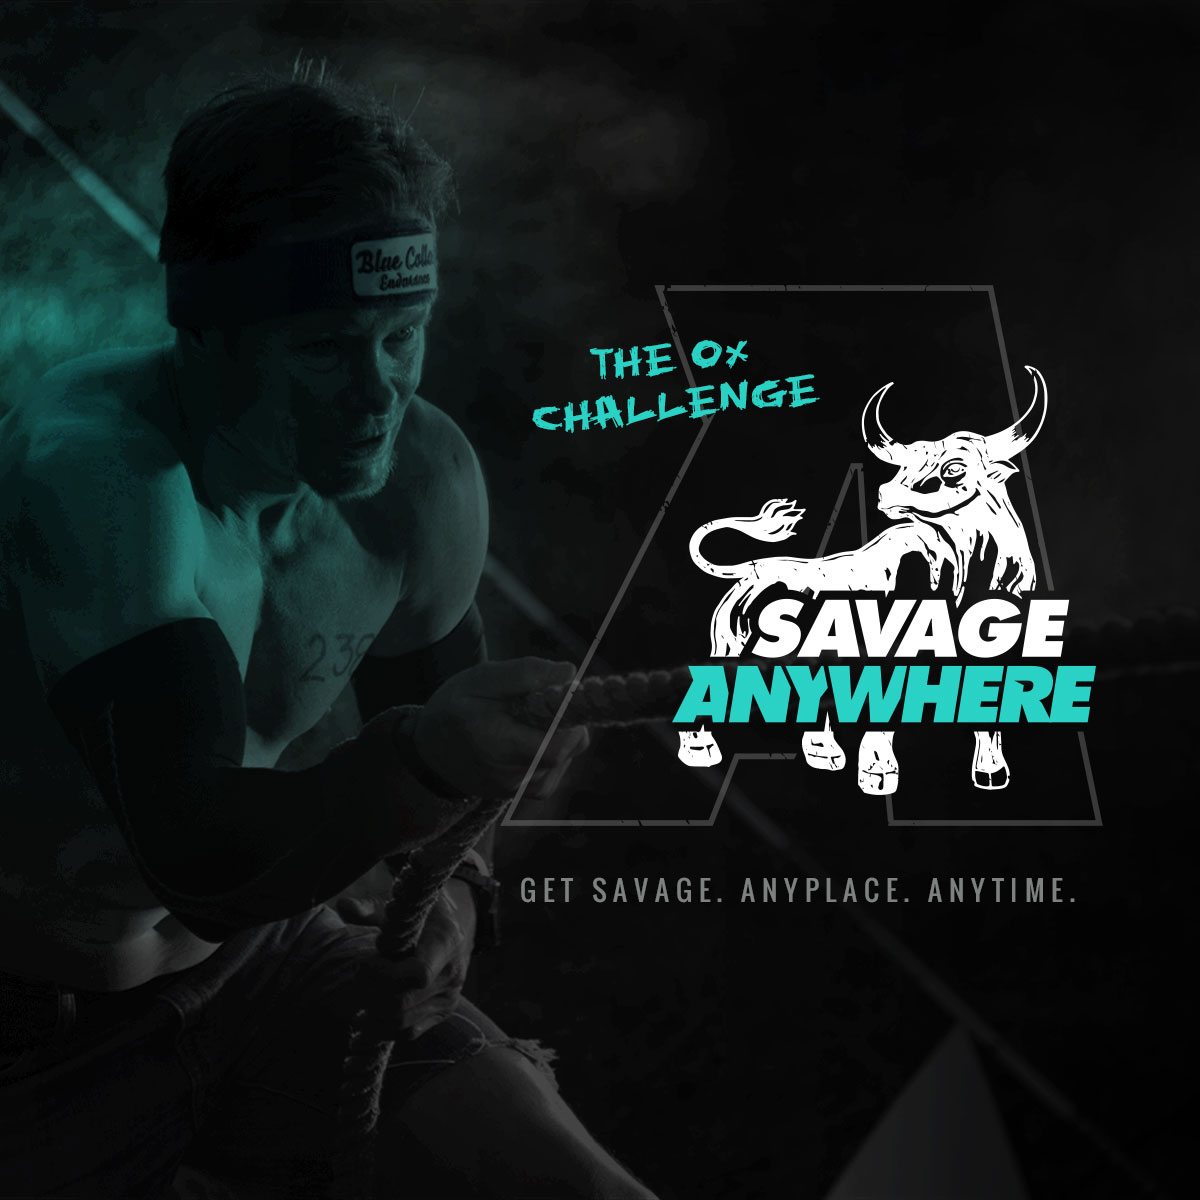 Anywhere: The Ox Challenge